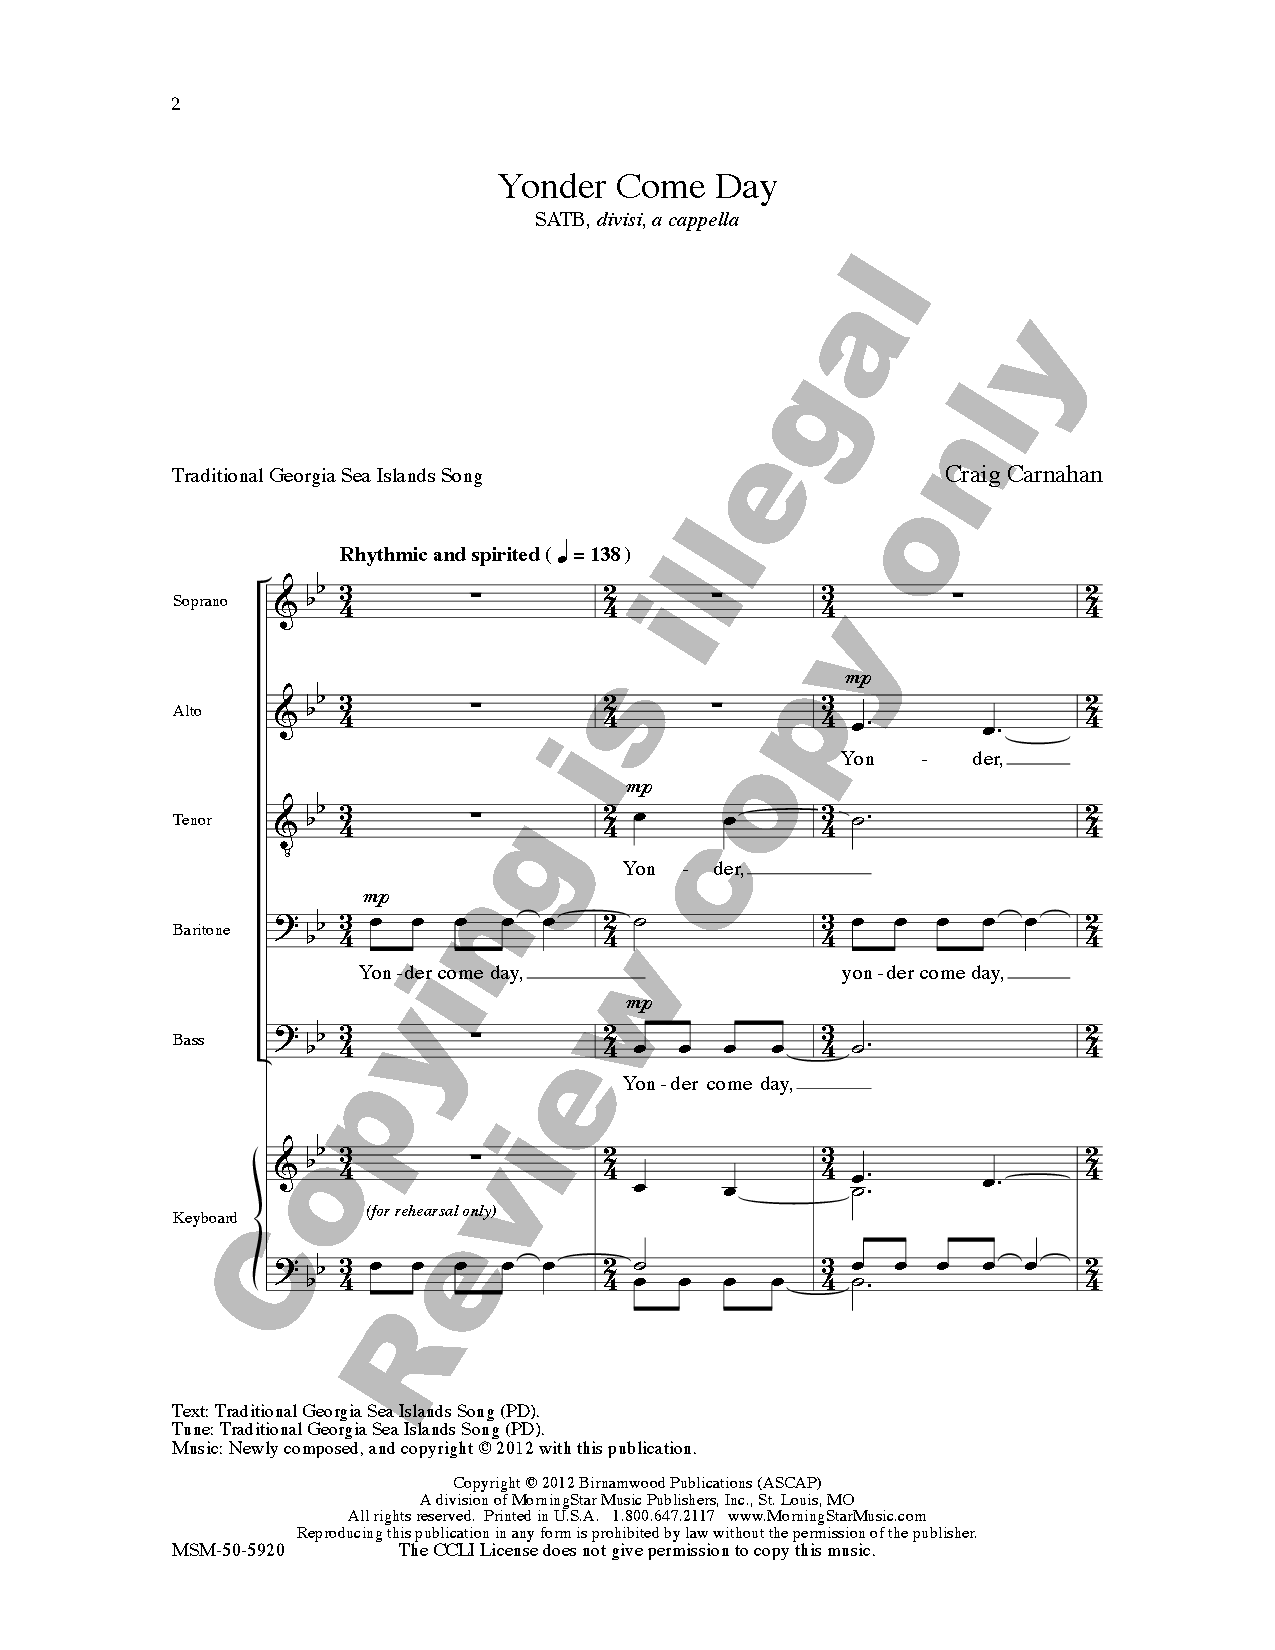 Yonder Come Day (SATB ) by Craig Carnahan| J.W. Pepper